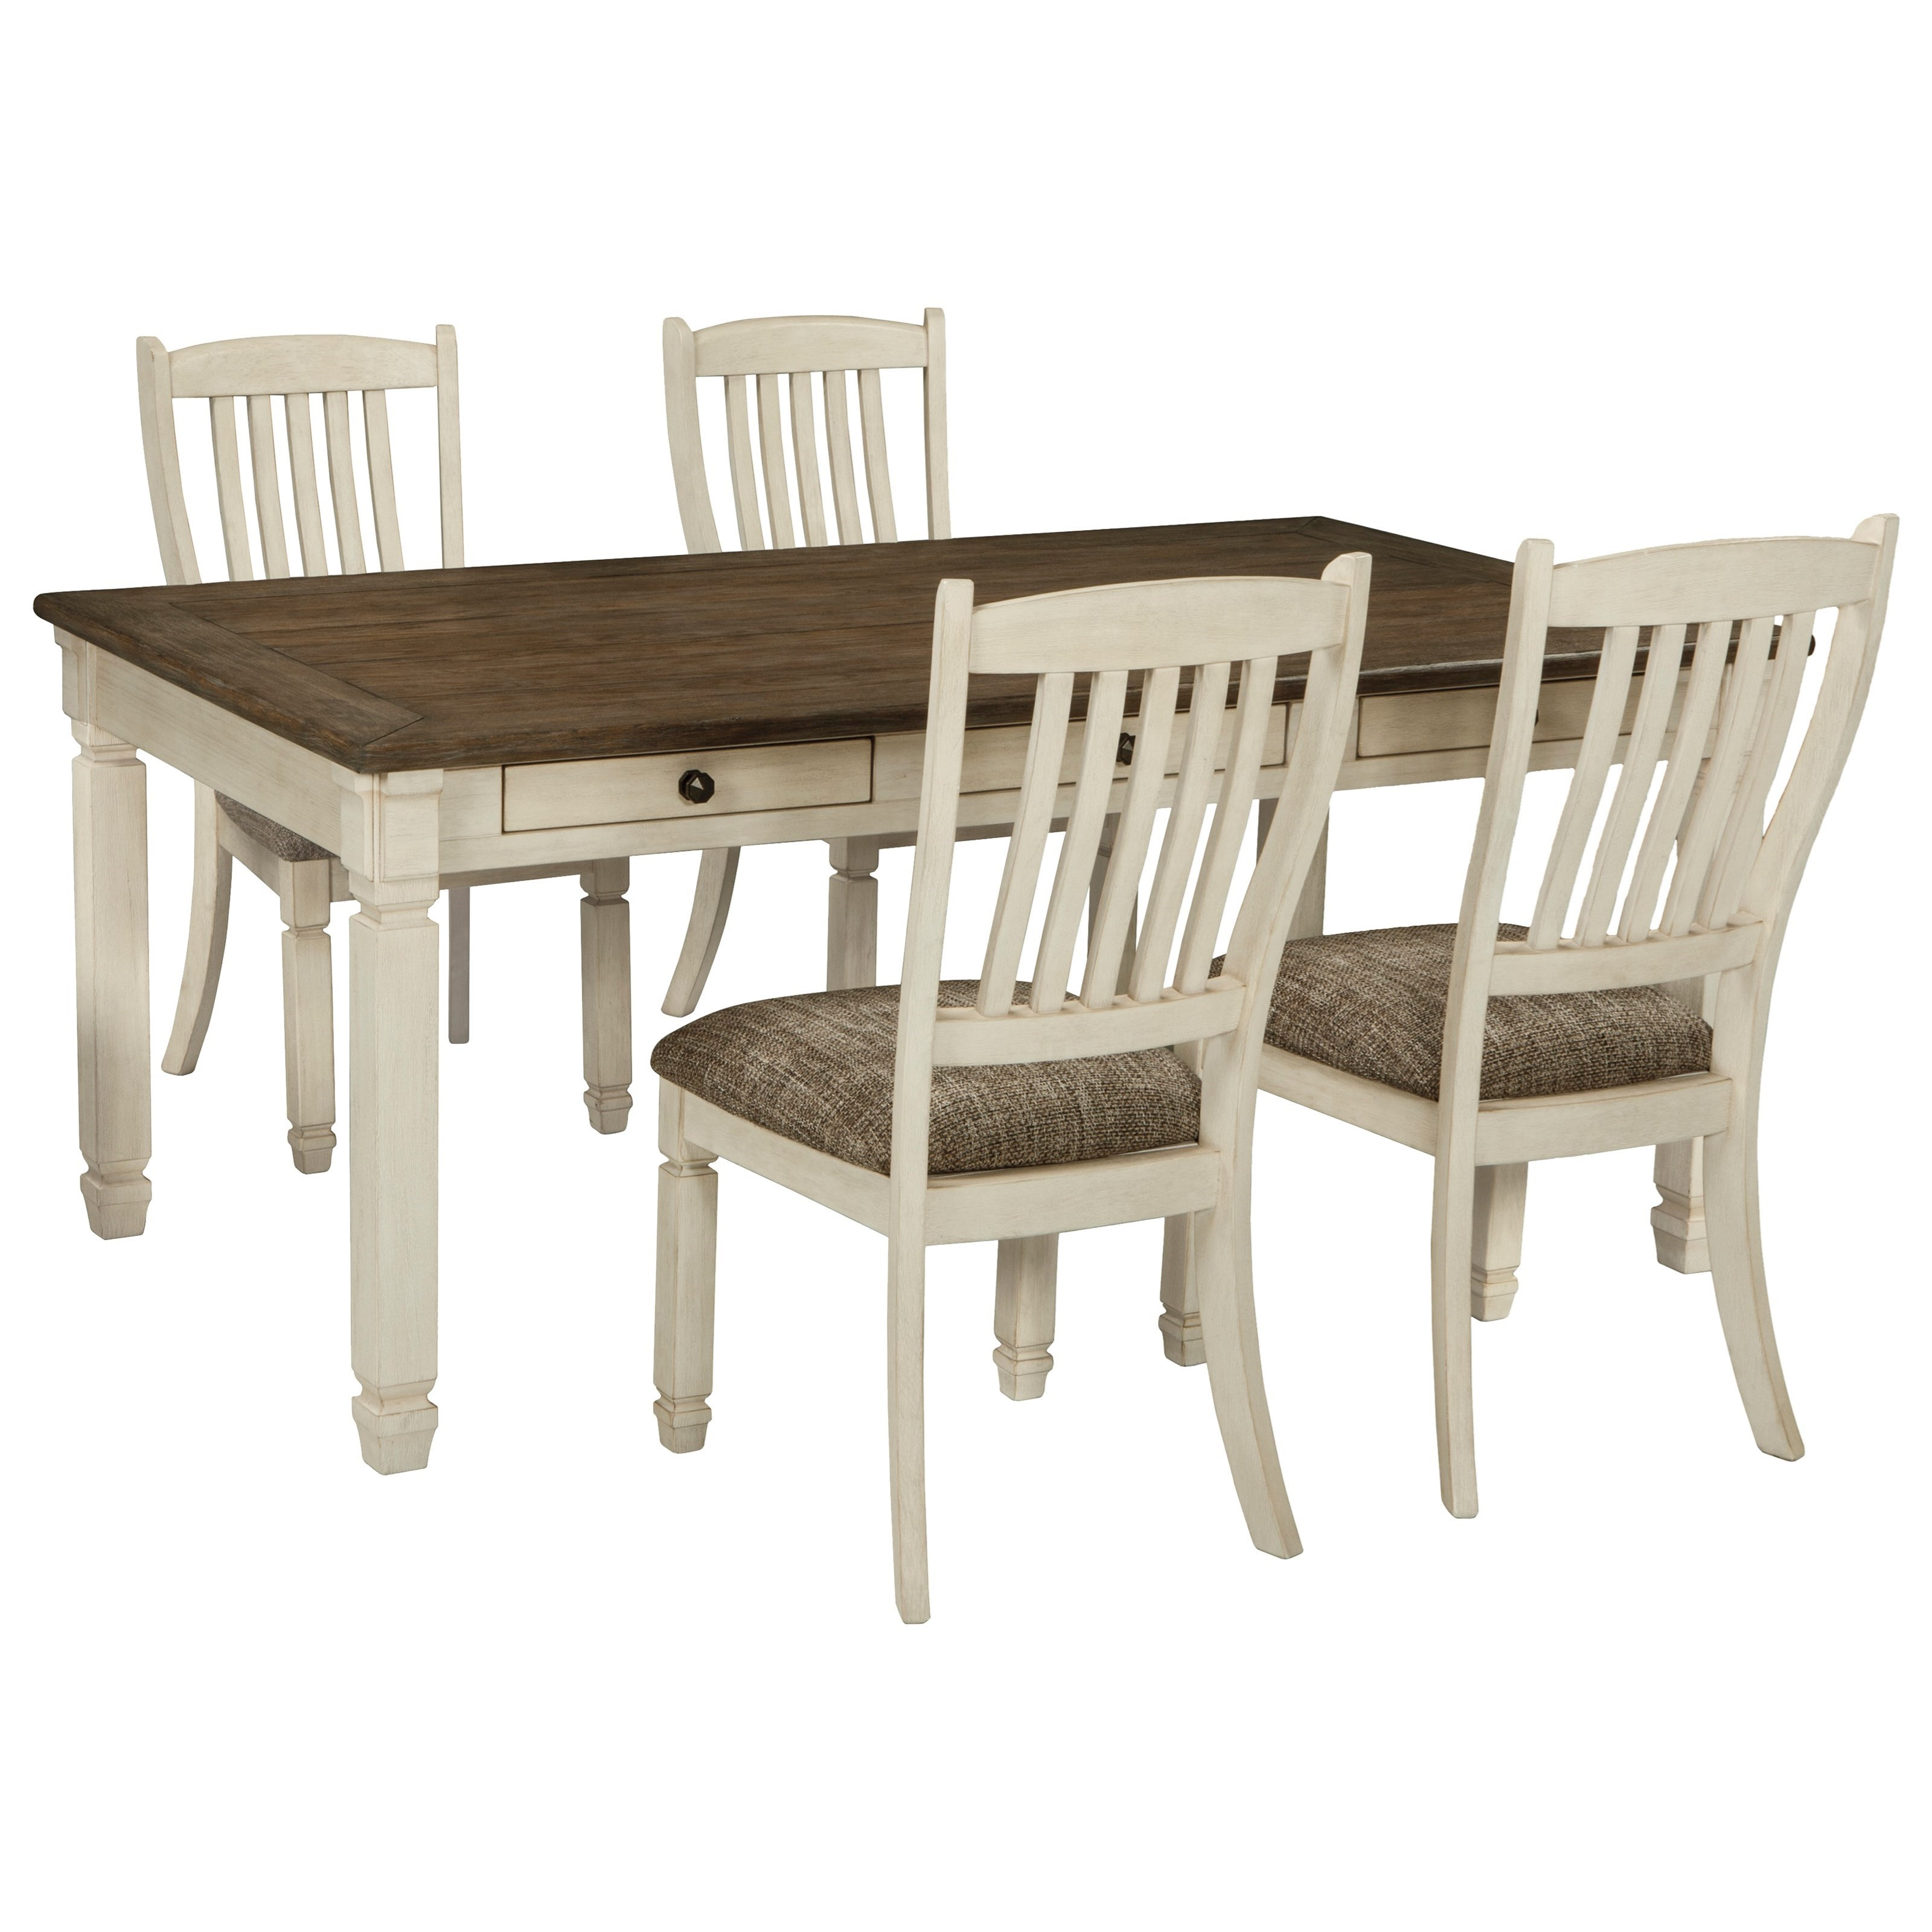 e3d691fc81 Relaxed Vintage 5-Piece Table and Chair Set. Low price guarantee badge by Signature  Design by Ashley